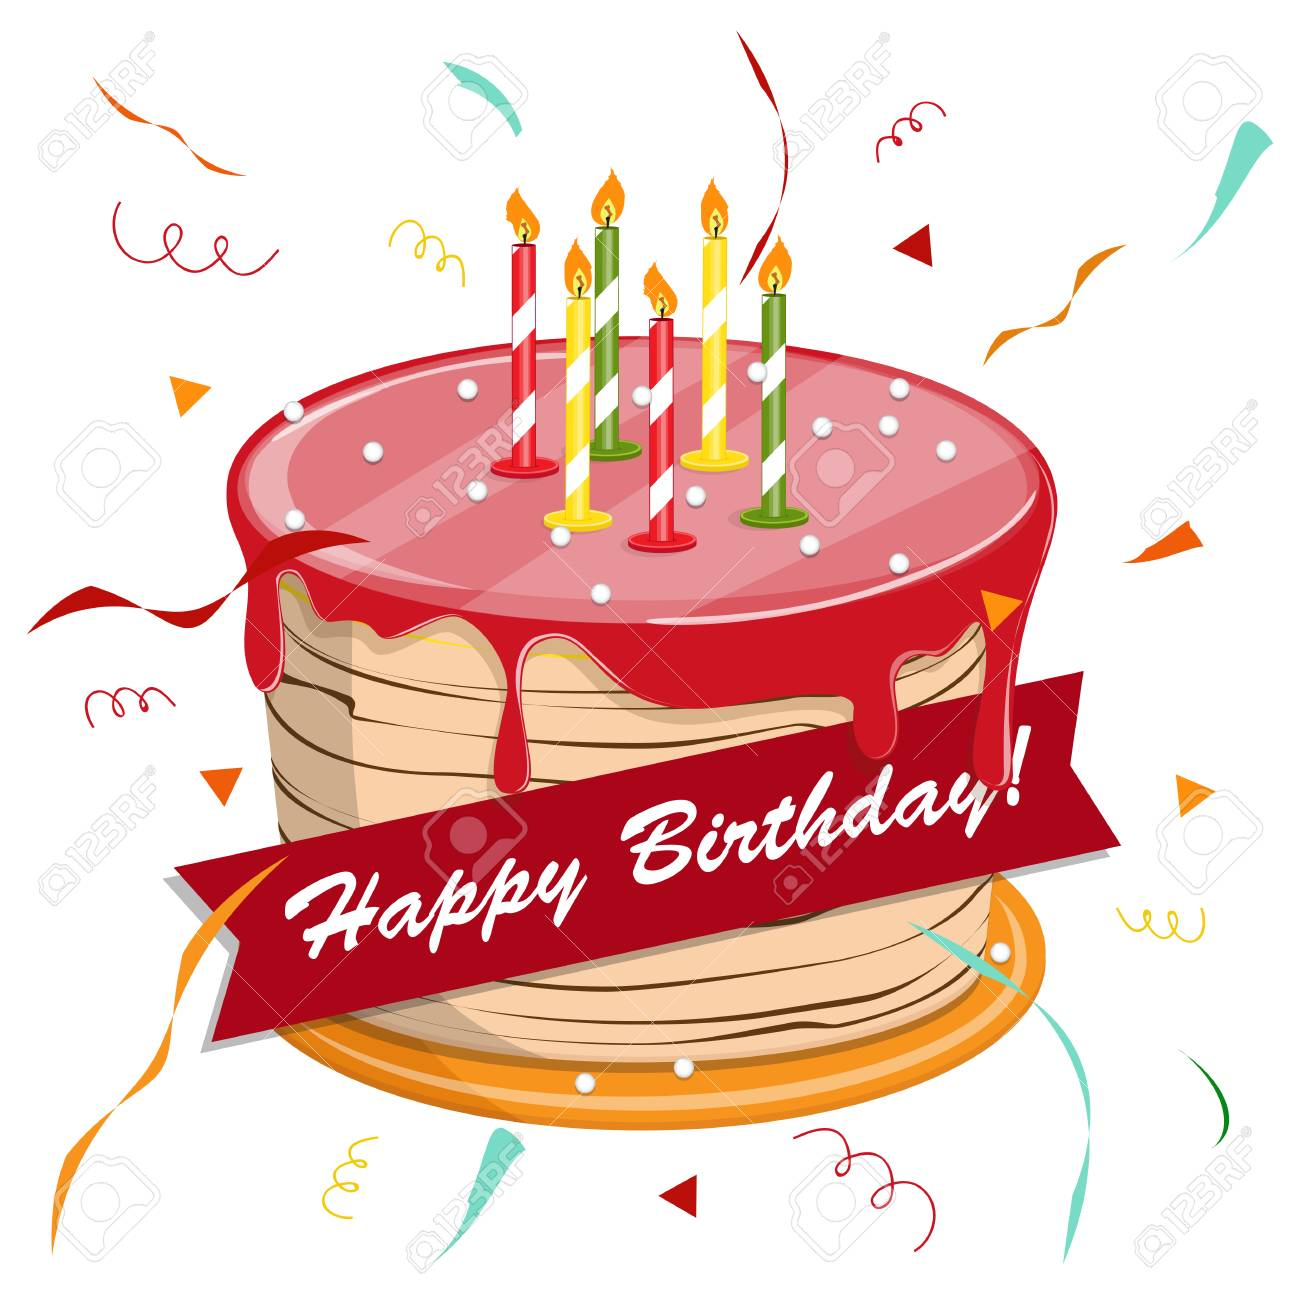 Cute cartoon happy birthday cake with candles. - 88887492